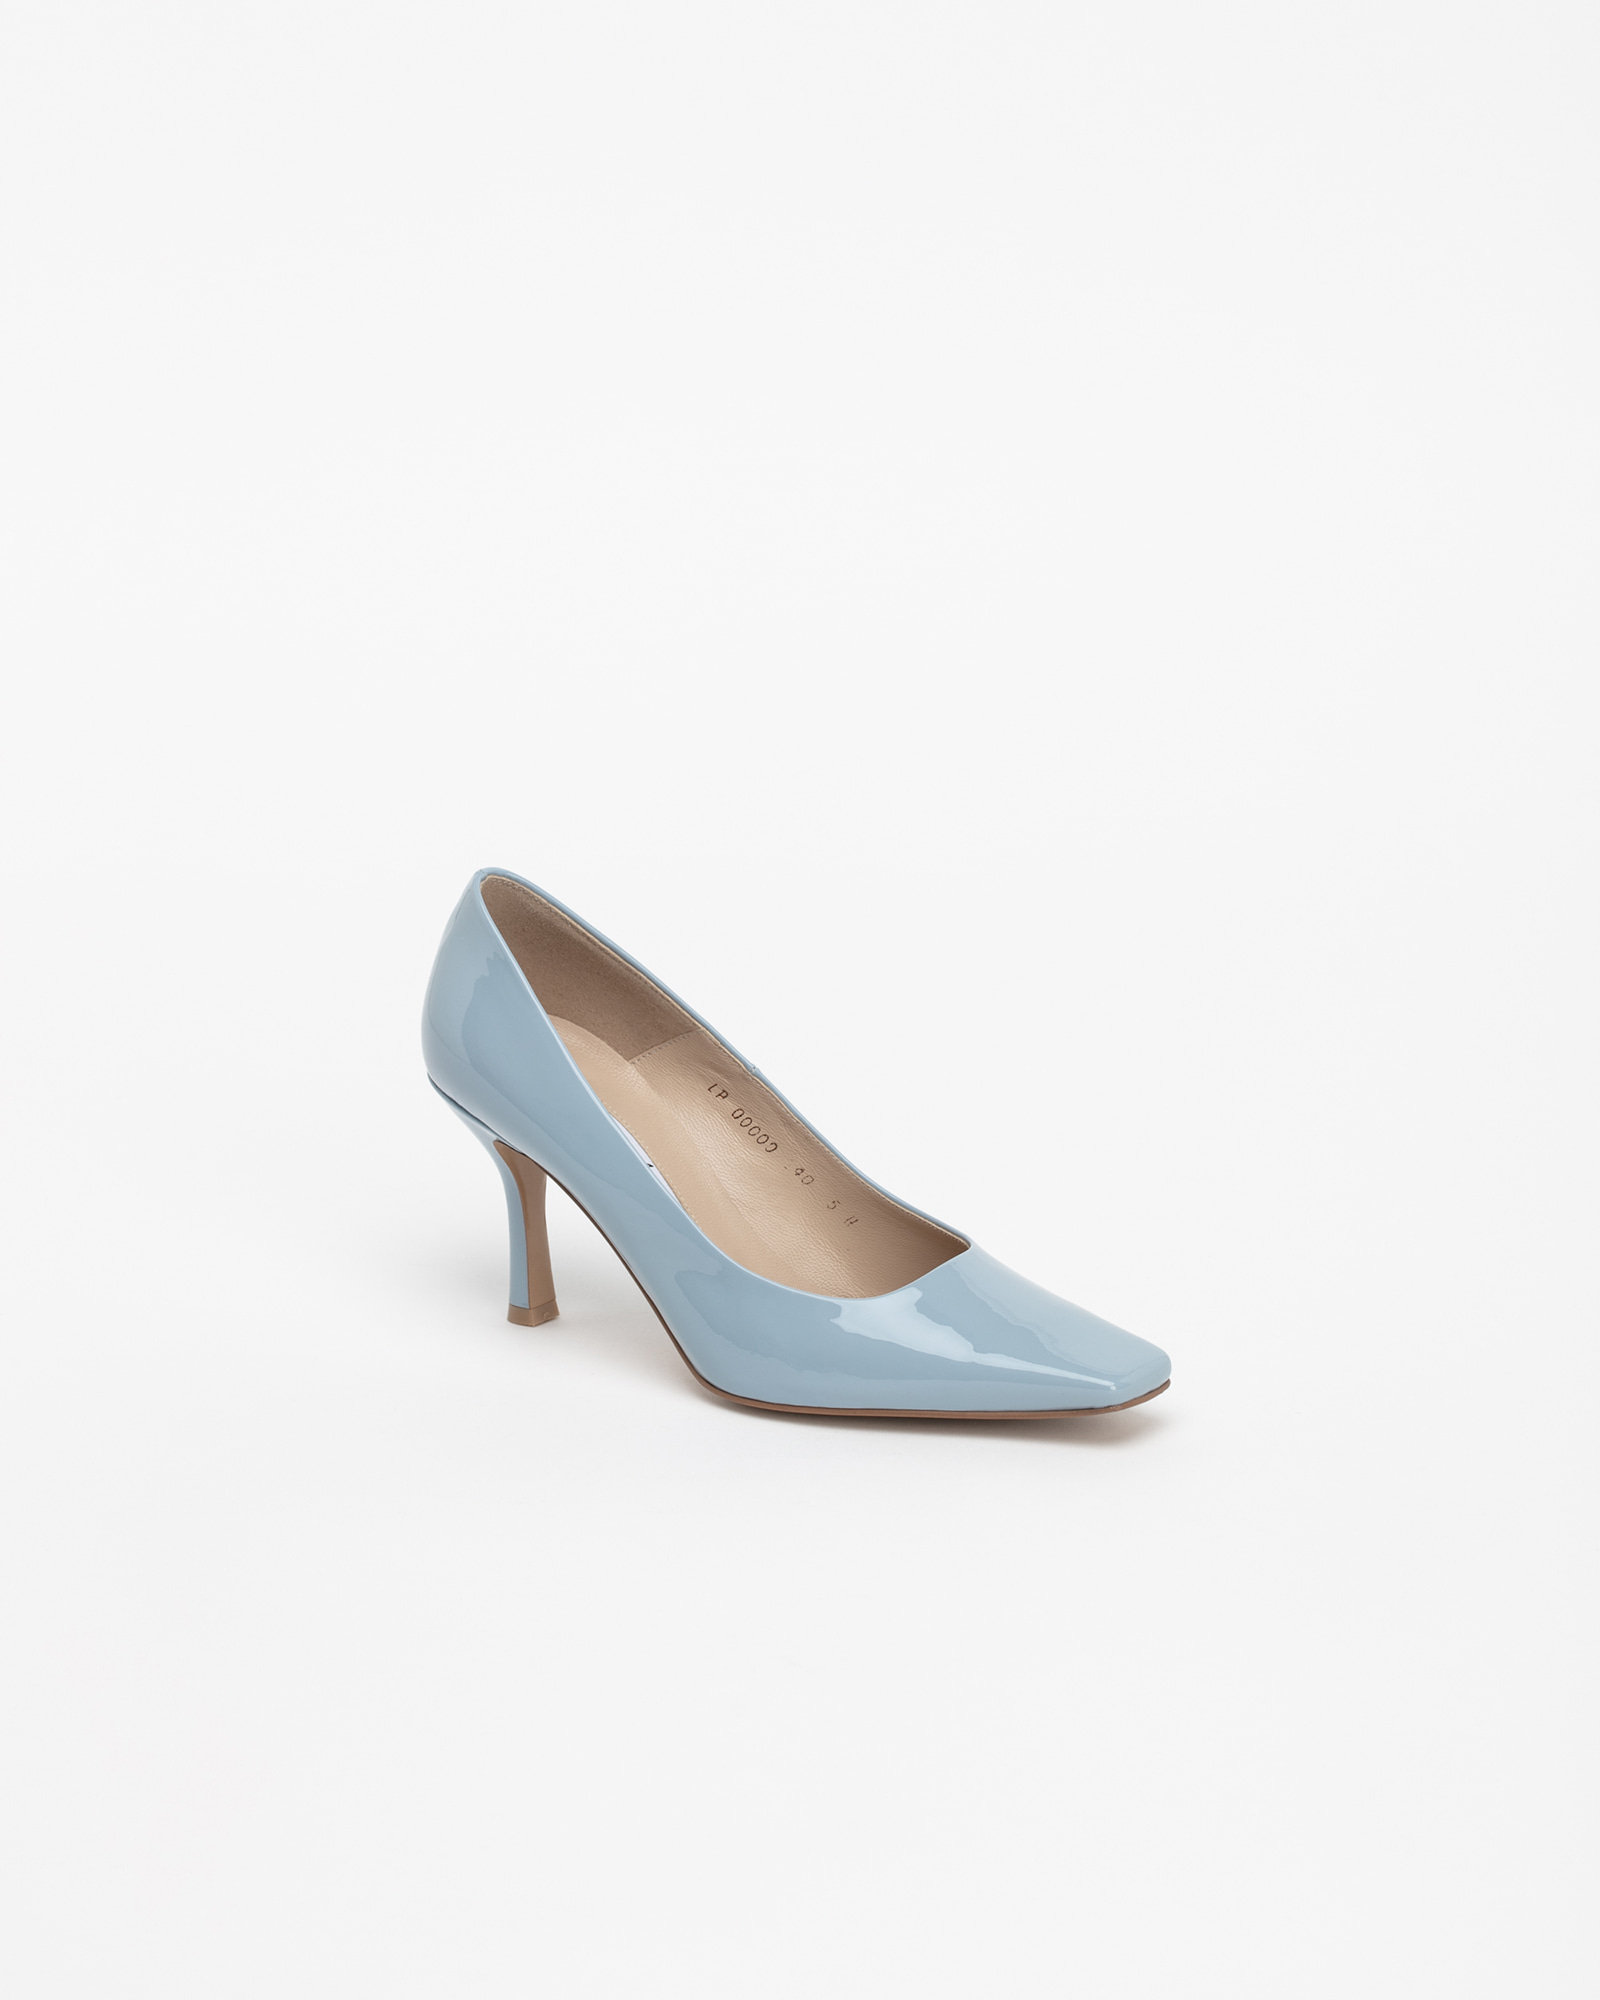 Seraff Pumps in Coral Blue Patent